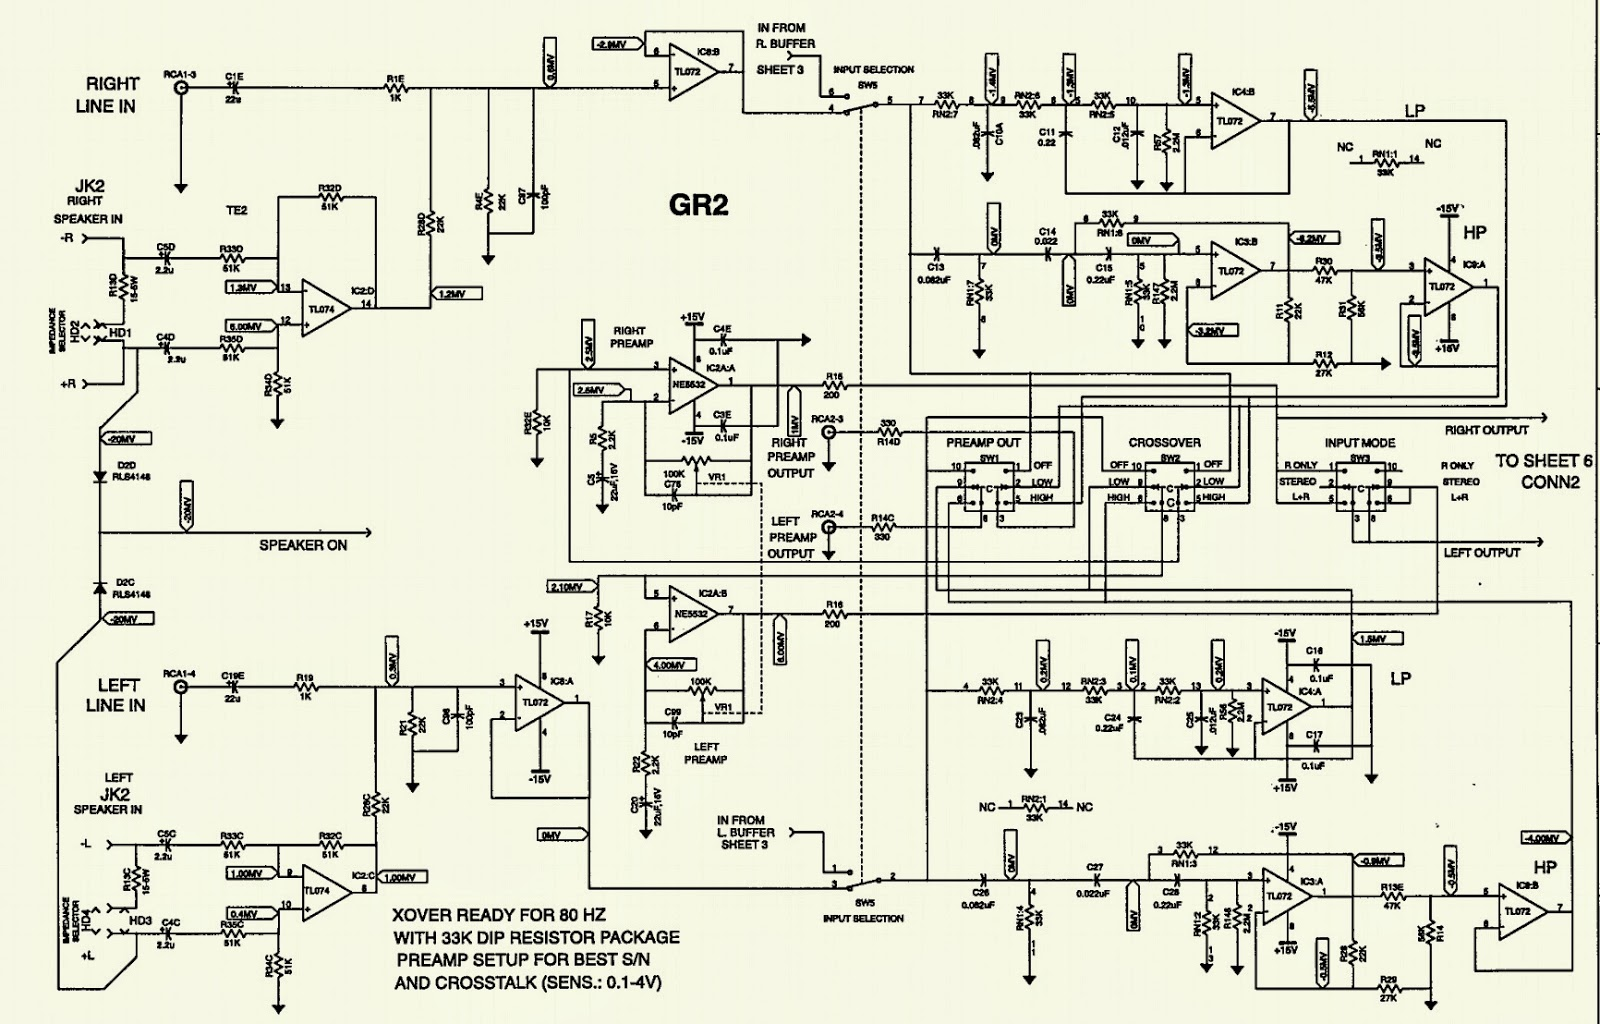 car crossover wiring diagram logic of 8 to 1 line multiplexer audio schematics best site harness